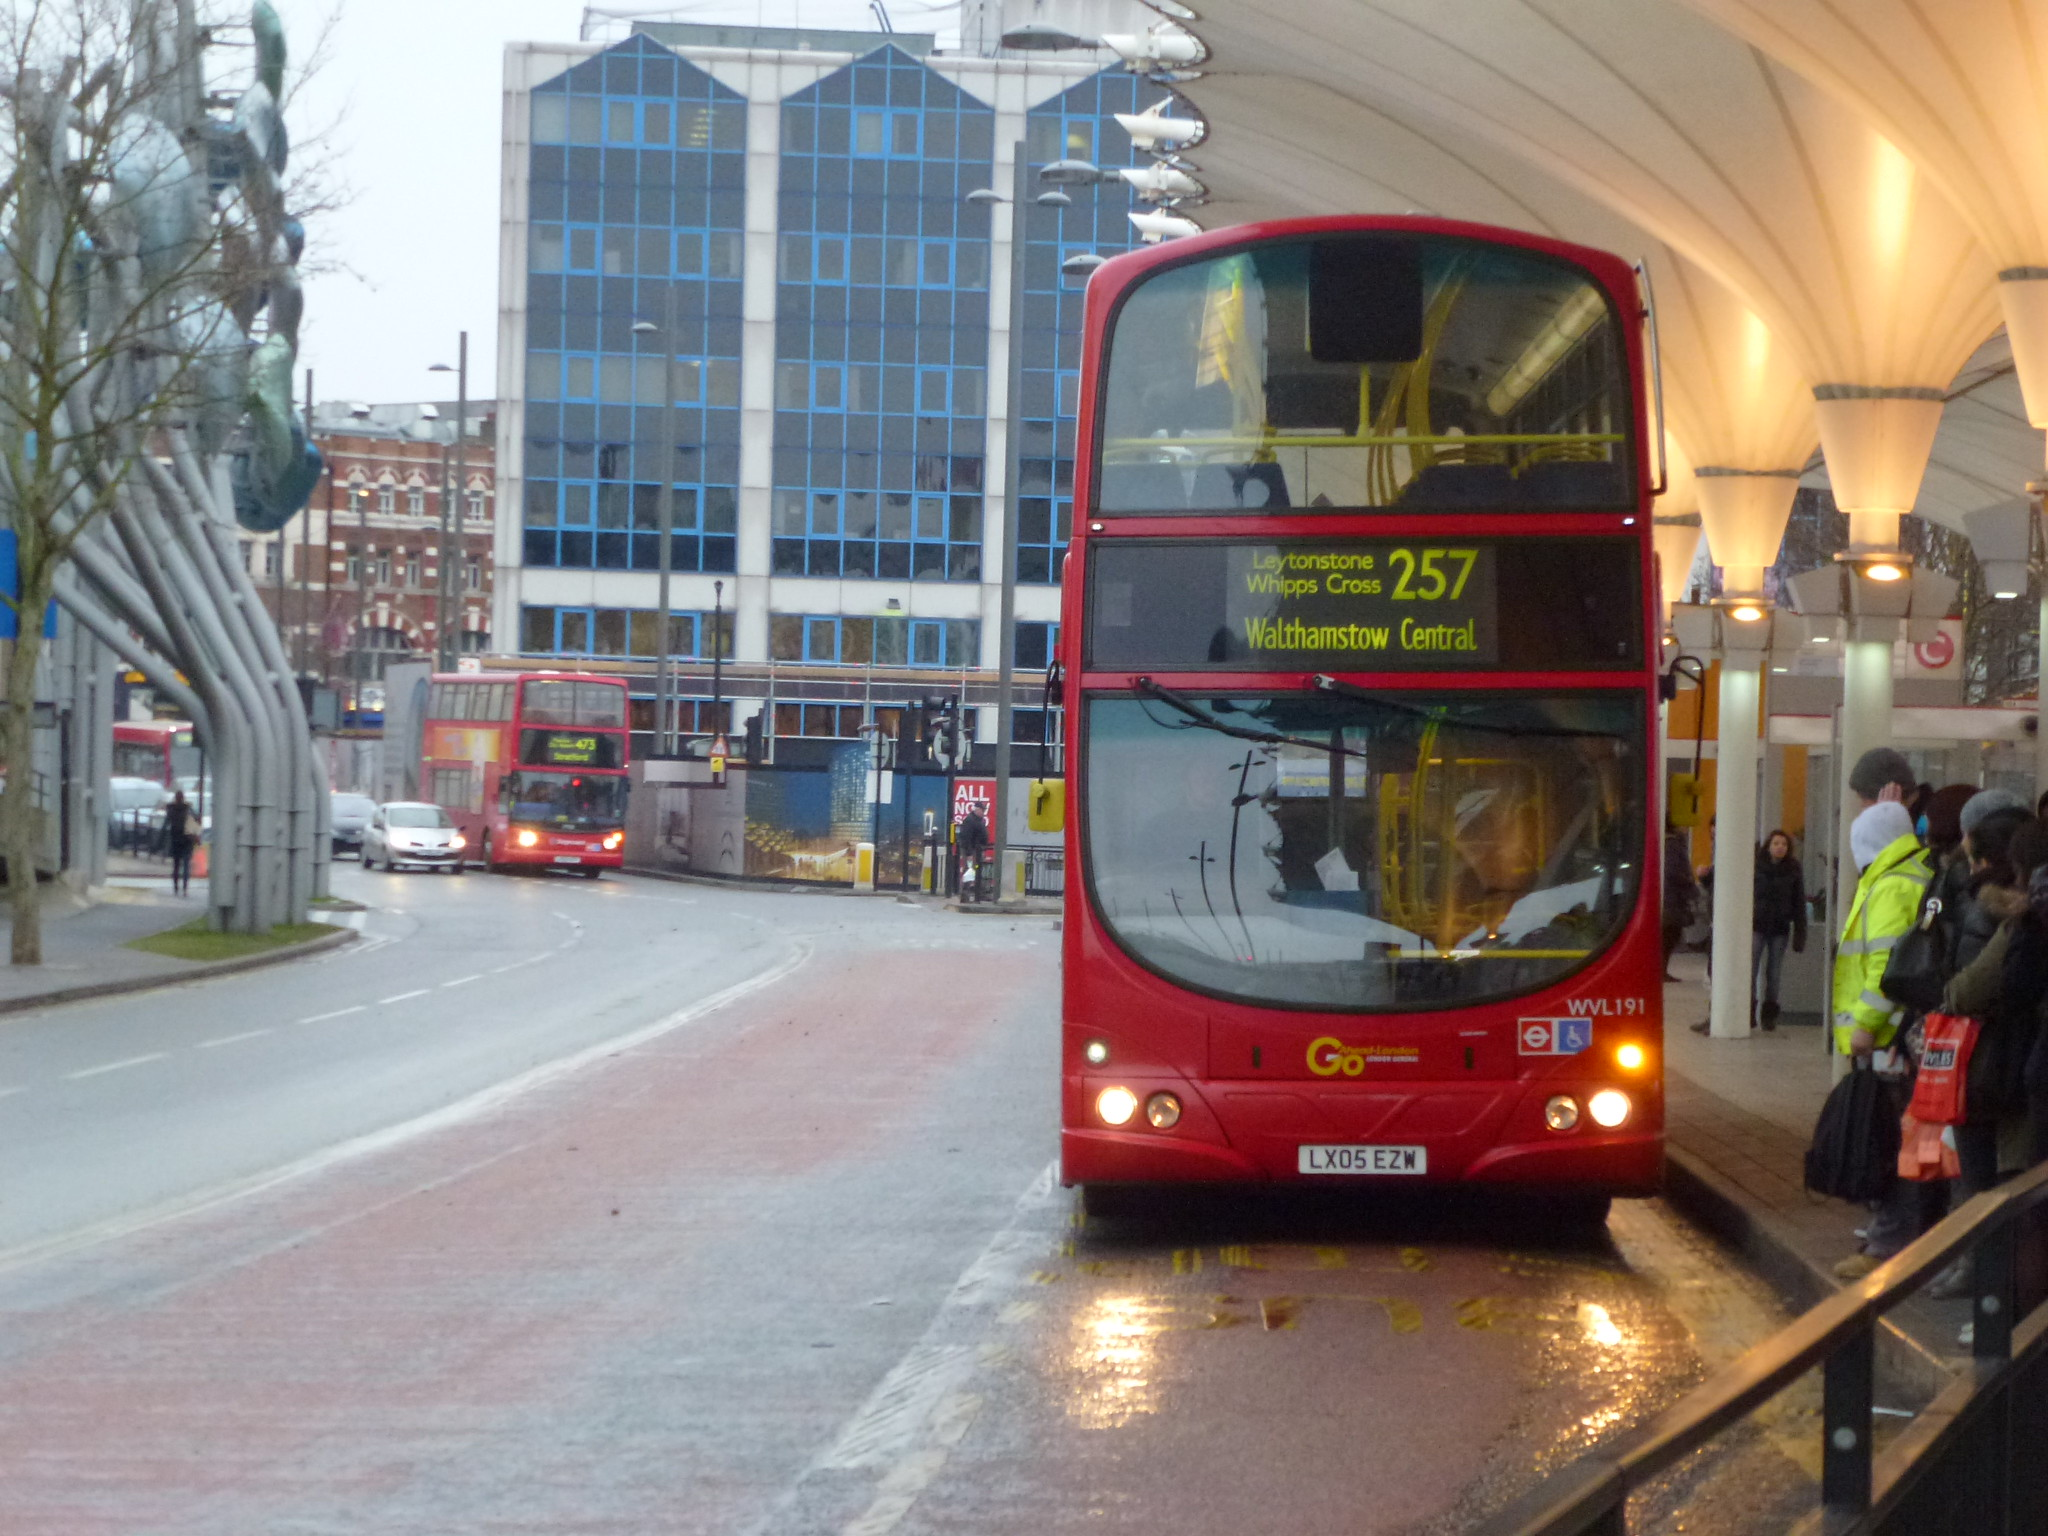 #AYearOfBuses 257: Stratford – Walthamstow Central